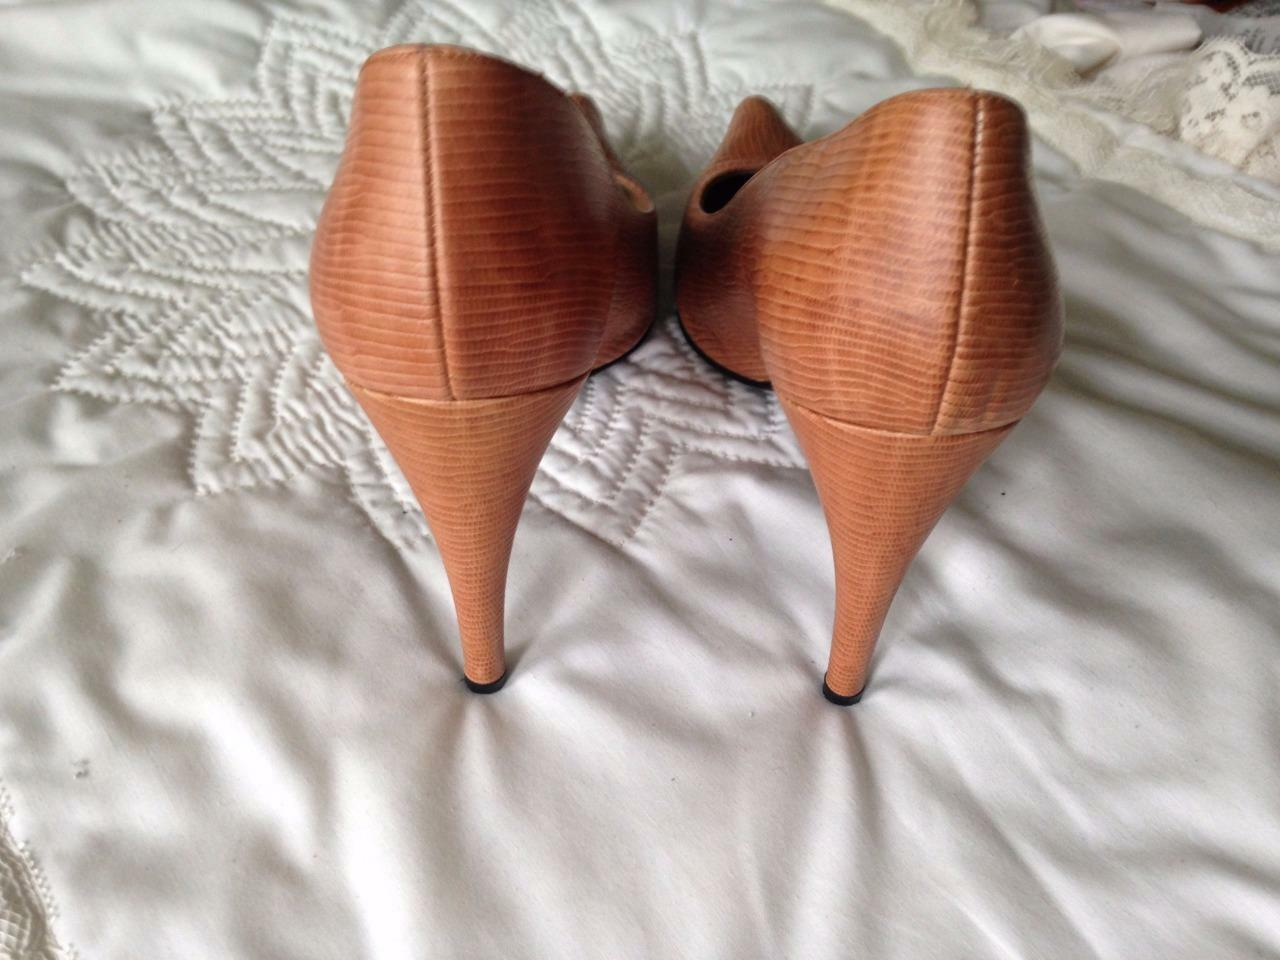 Charles Jourdan Leather 8 1 2 Medium Tan 4 Inch Inch Inch Heels Pointed Toes Animal Print 0f8a58